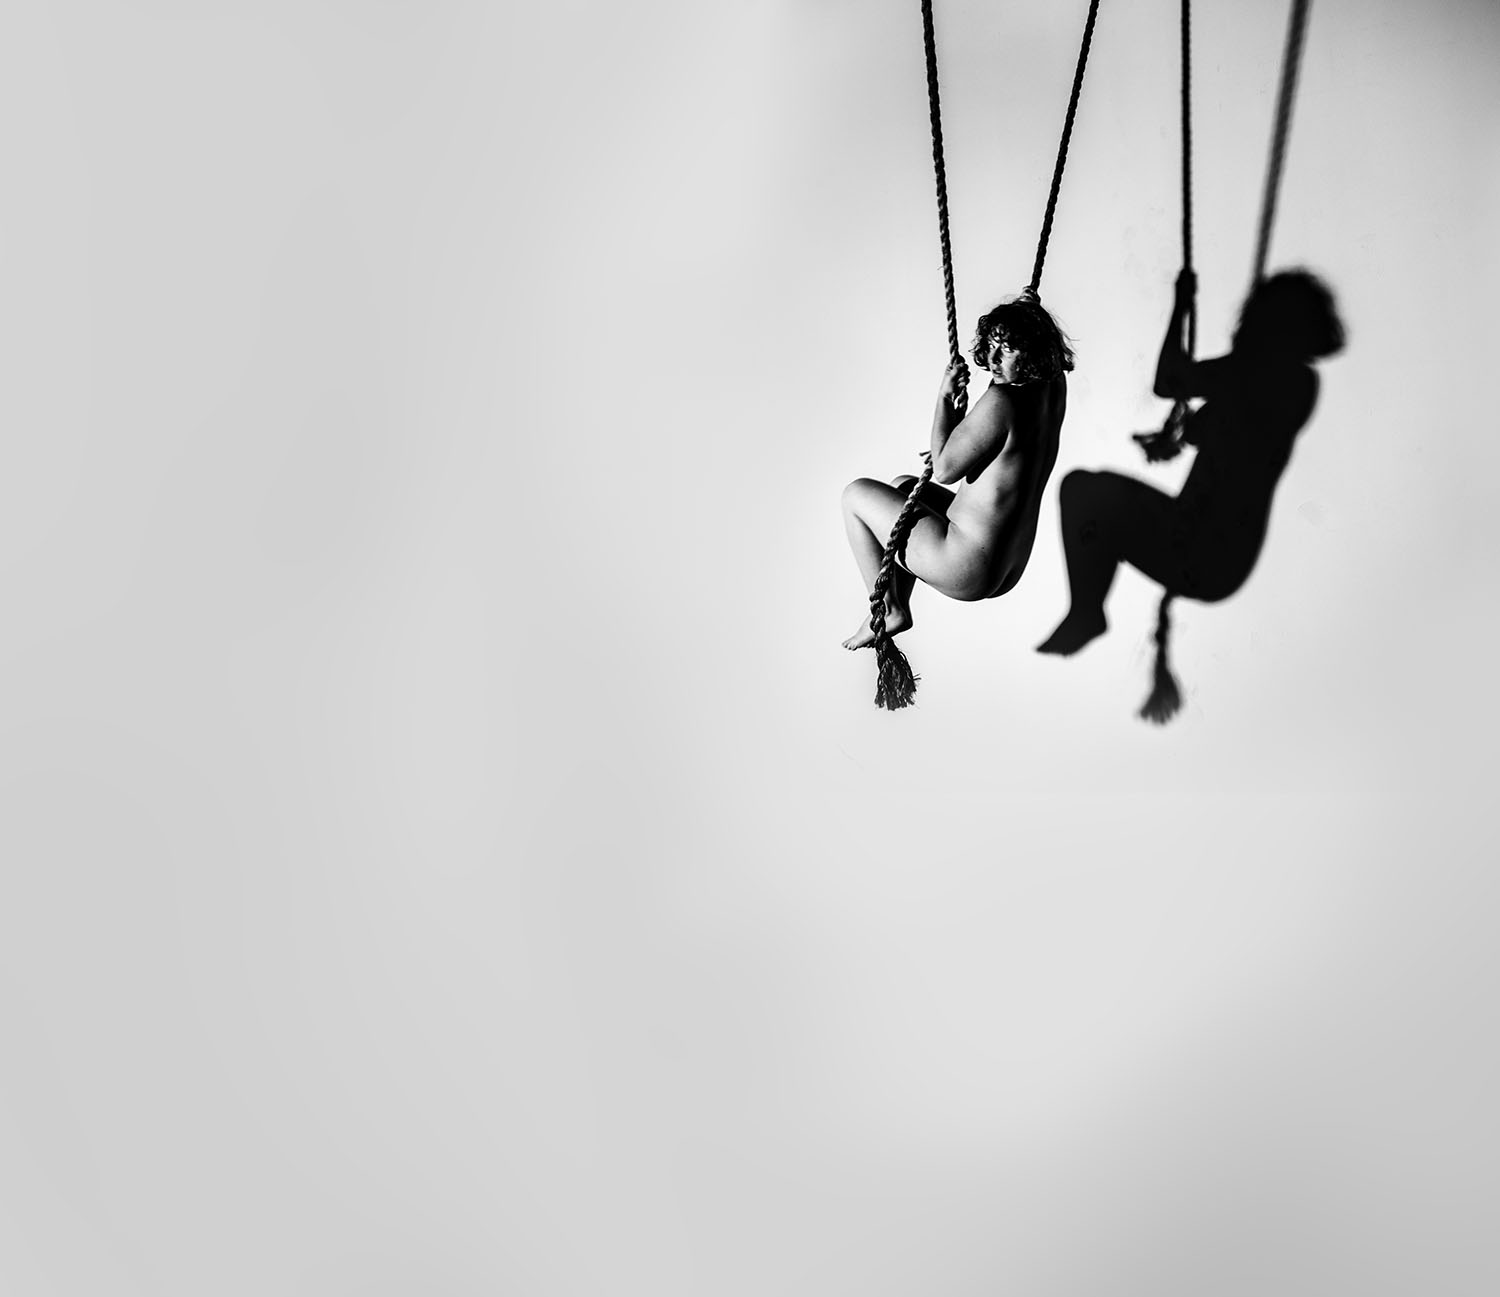 Rope Swing 2019 15in x 15 in carbon pigment print